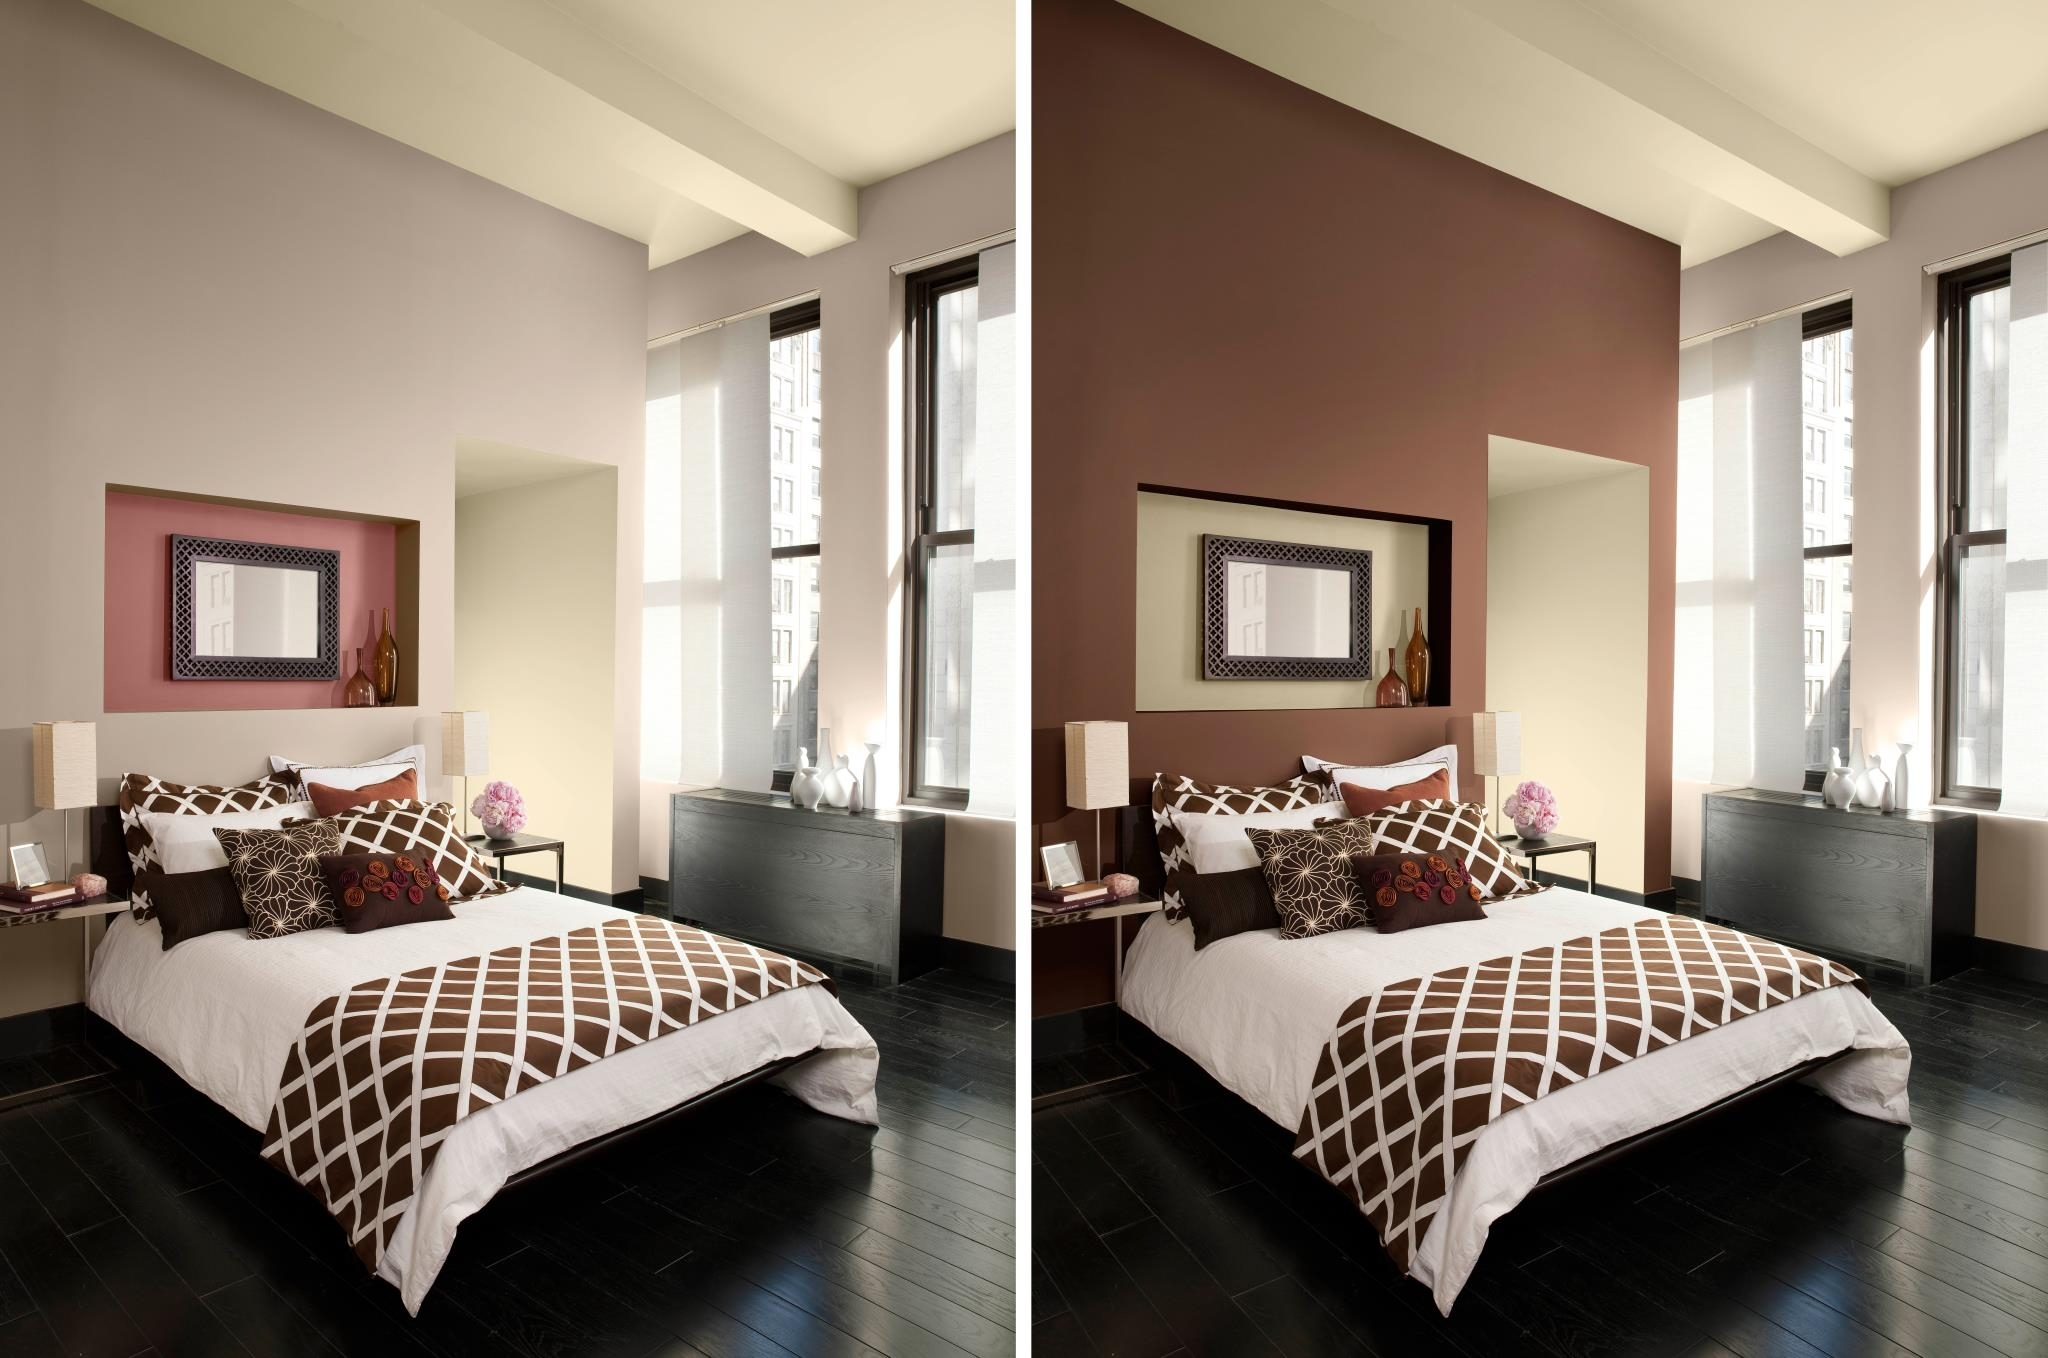 Emphasis On The Accent Wall | Harry Stearns Intended For Most Recent Wall Accents Colors For Bedrooms (View 8 of 15)